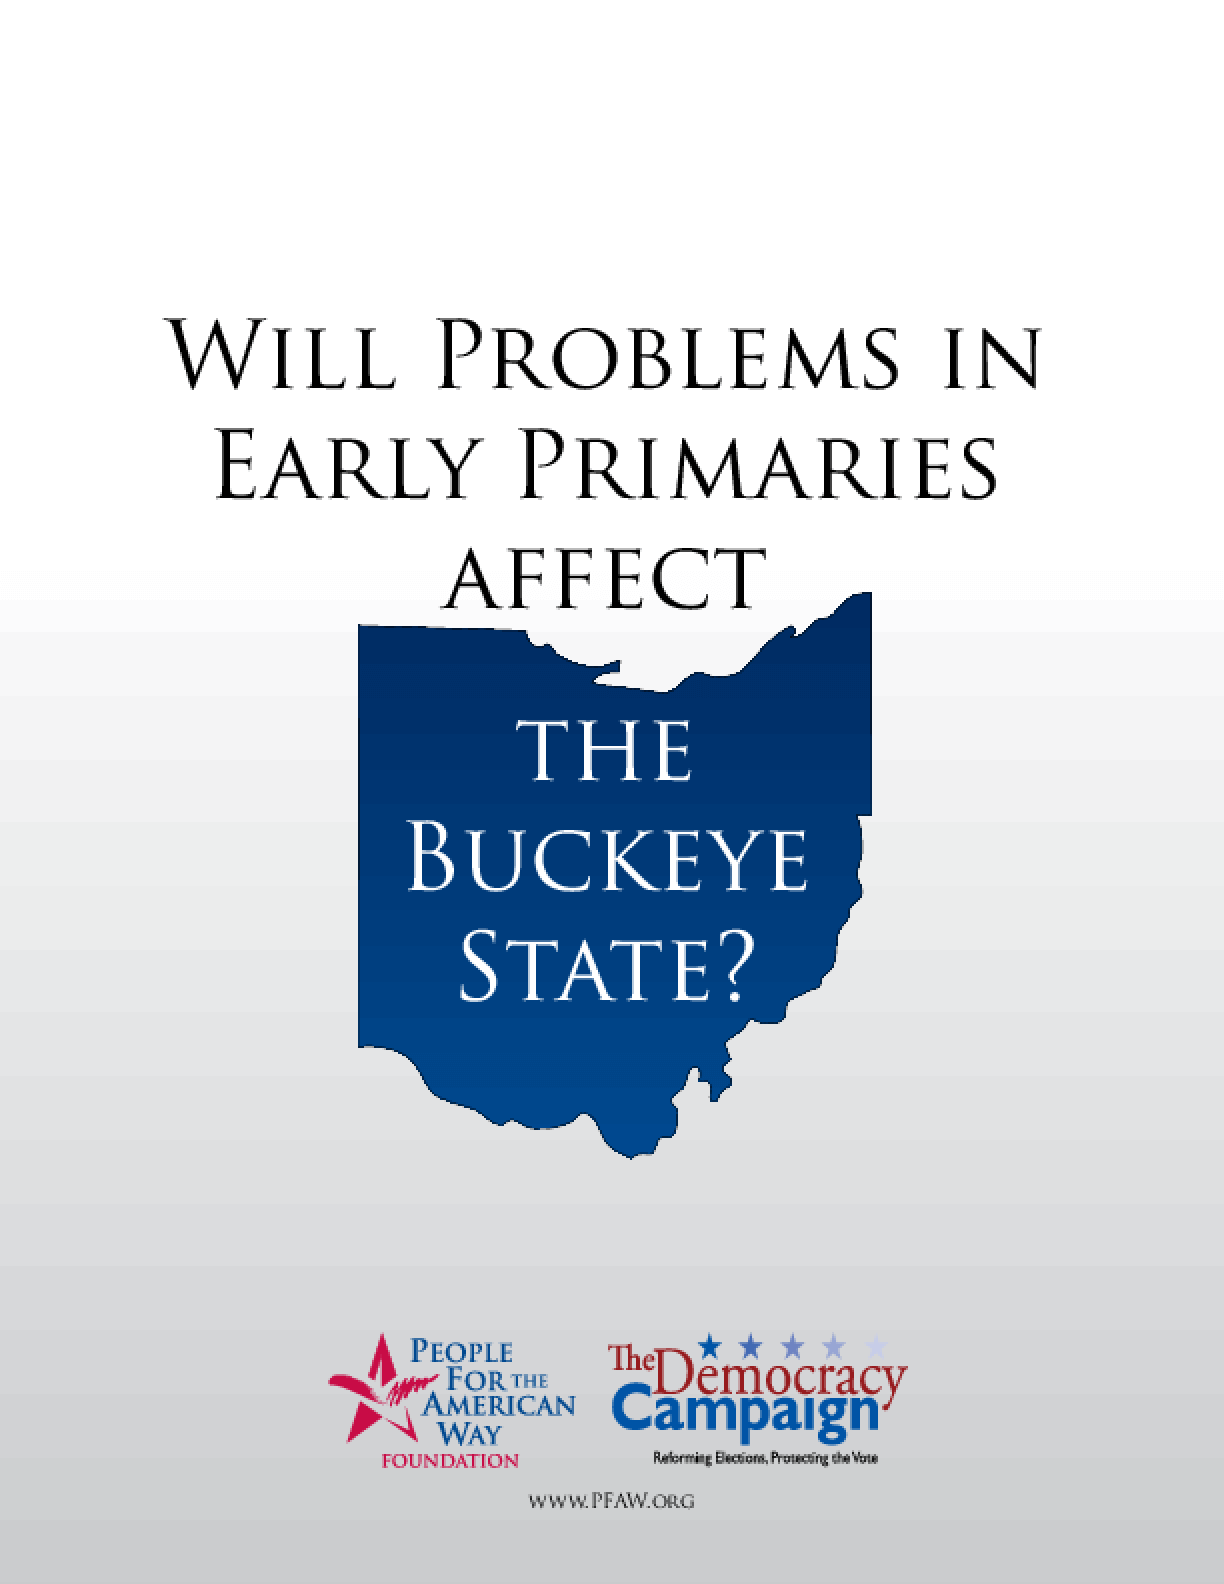 Will Problems in Early Primaries Affect the Buckeye State?